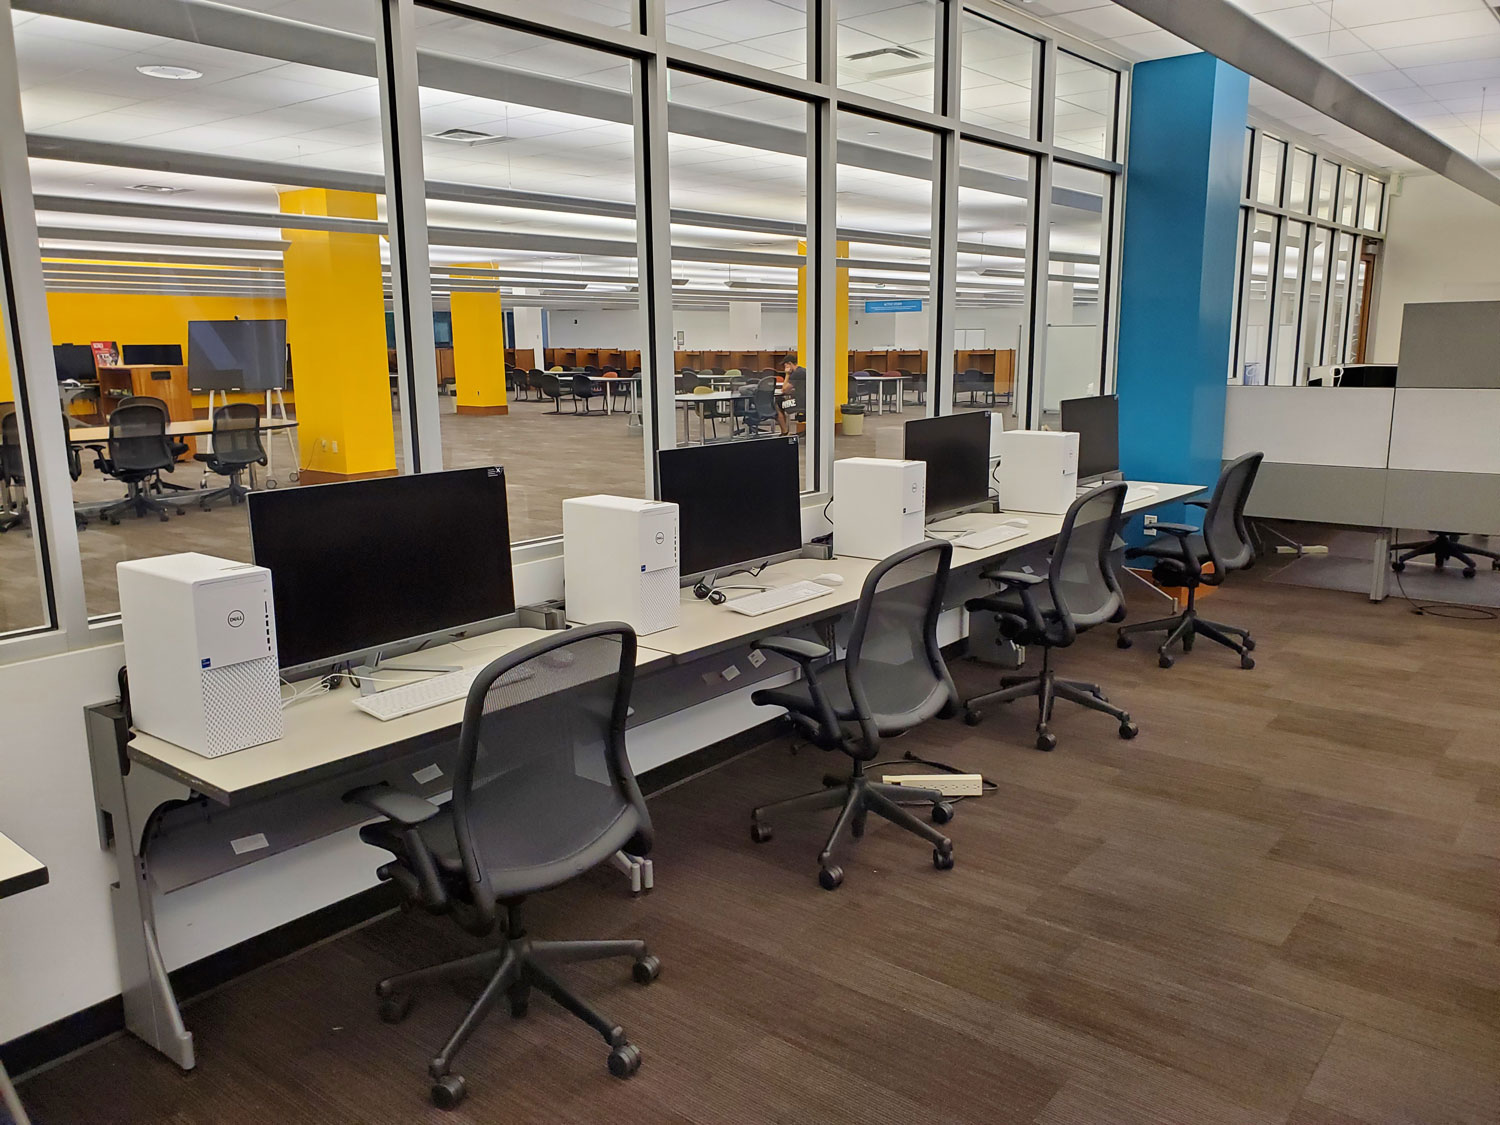 Image of high-performance computers designed for data computational analysis available at the Marriott Library.